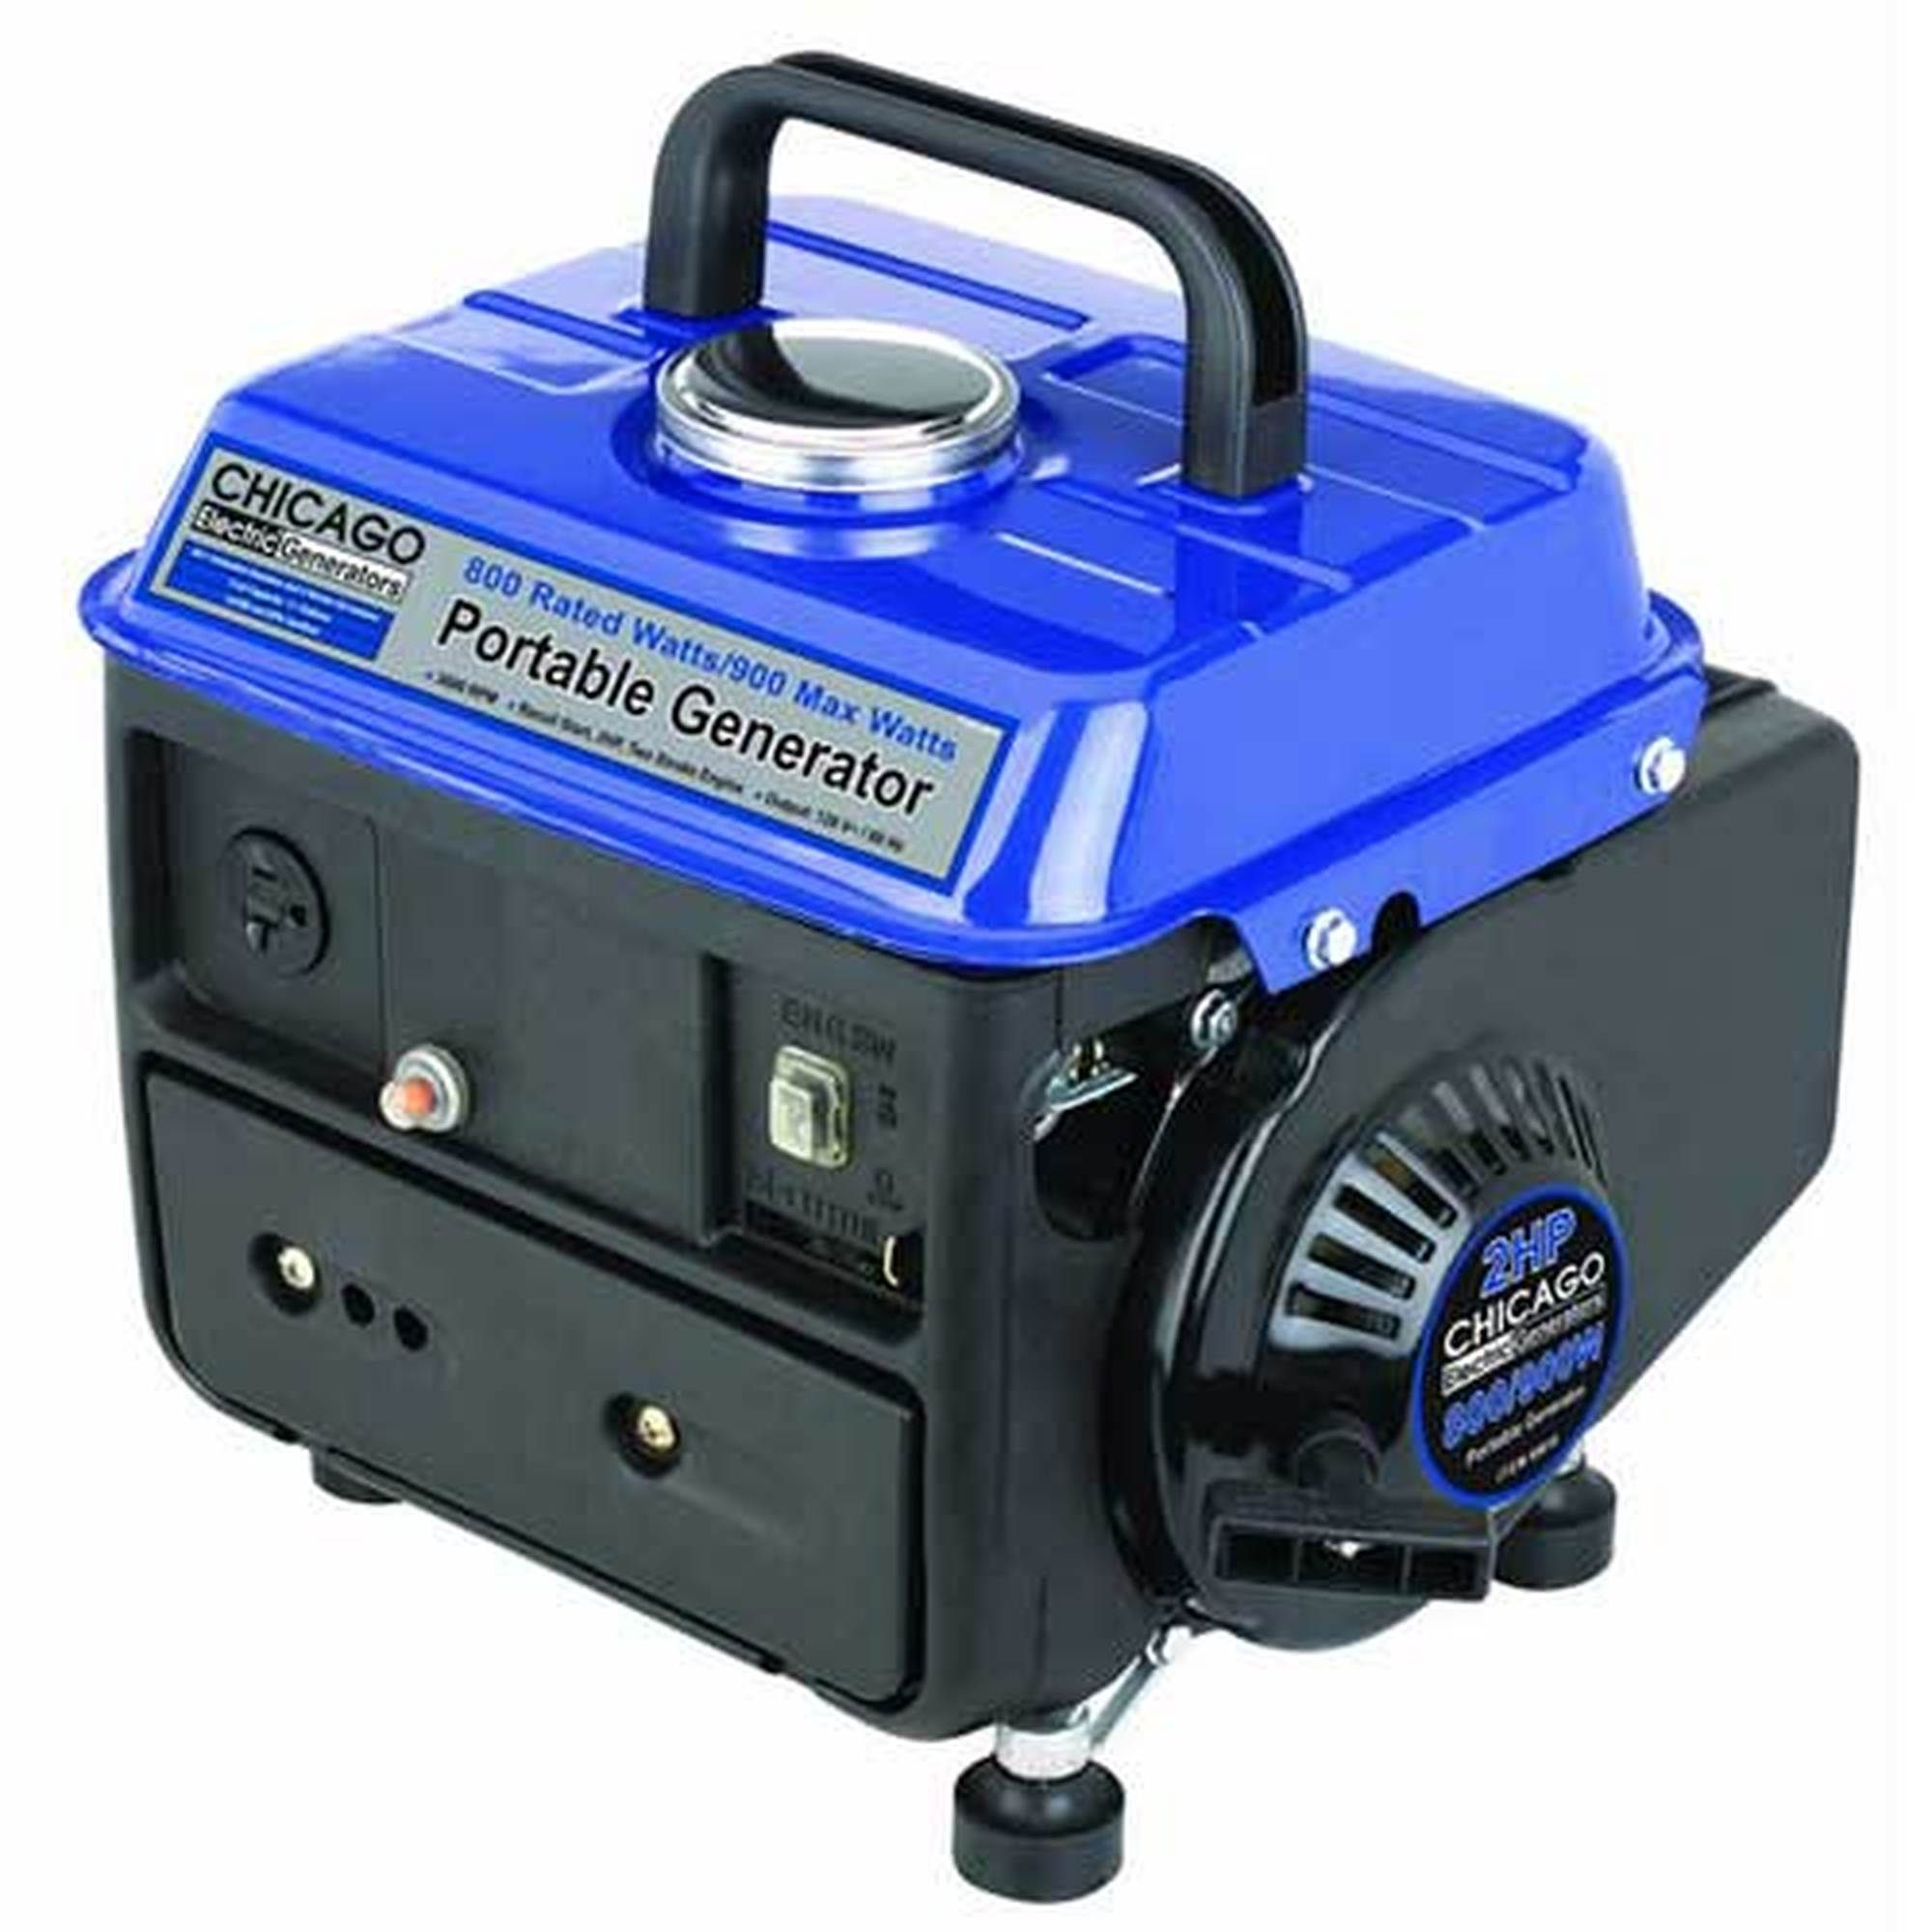 Generator 800W 240 Volts for rent A lightweight portable